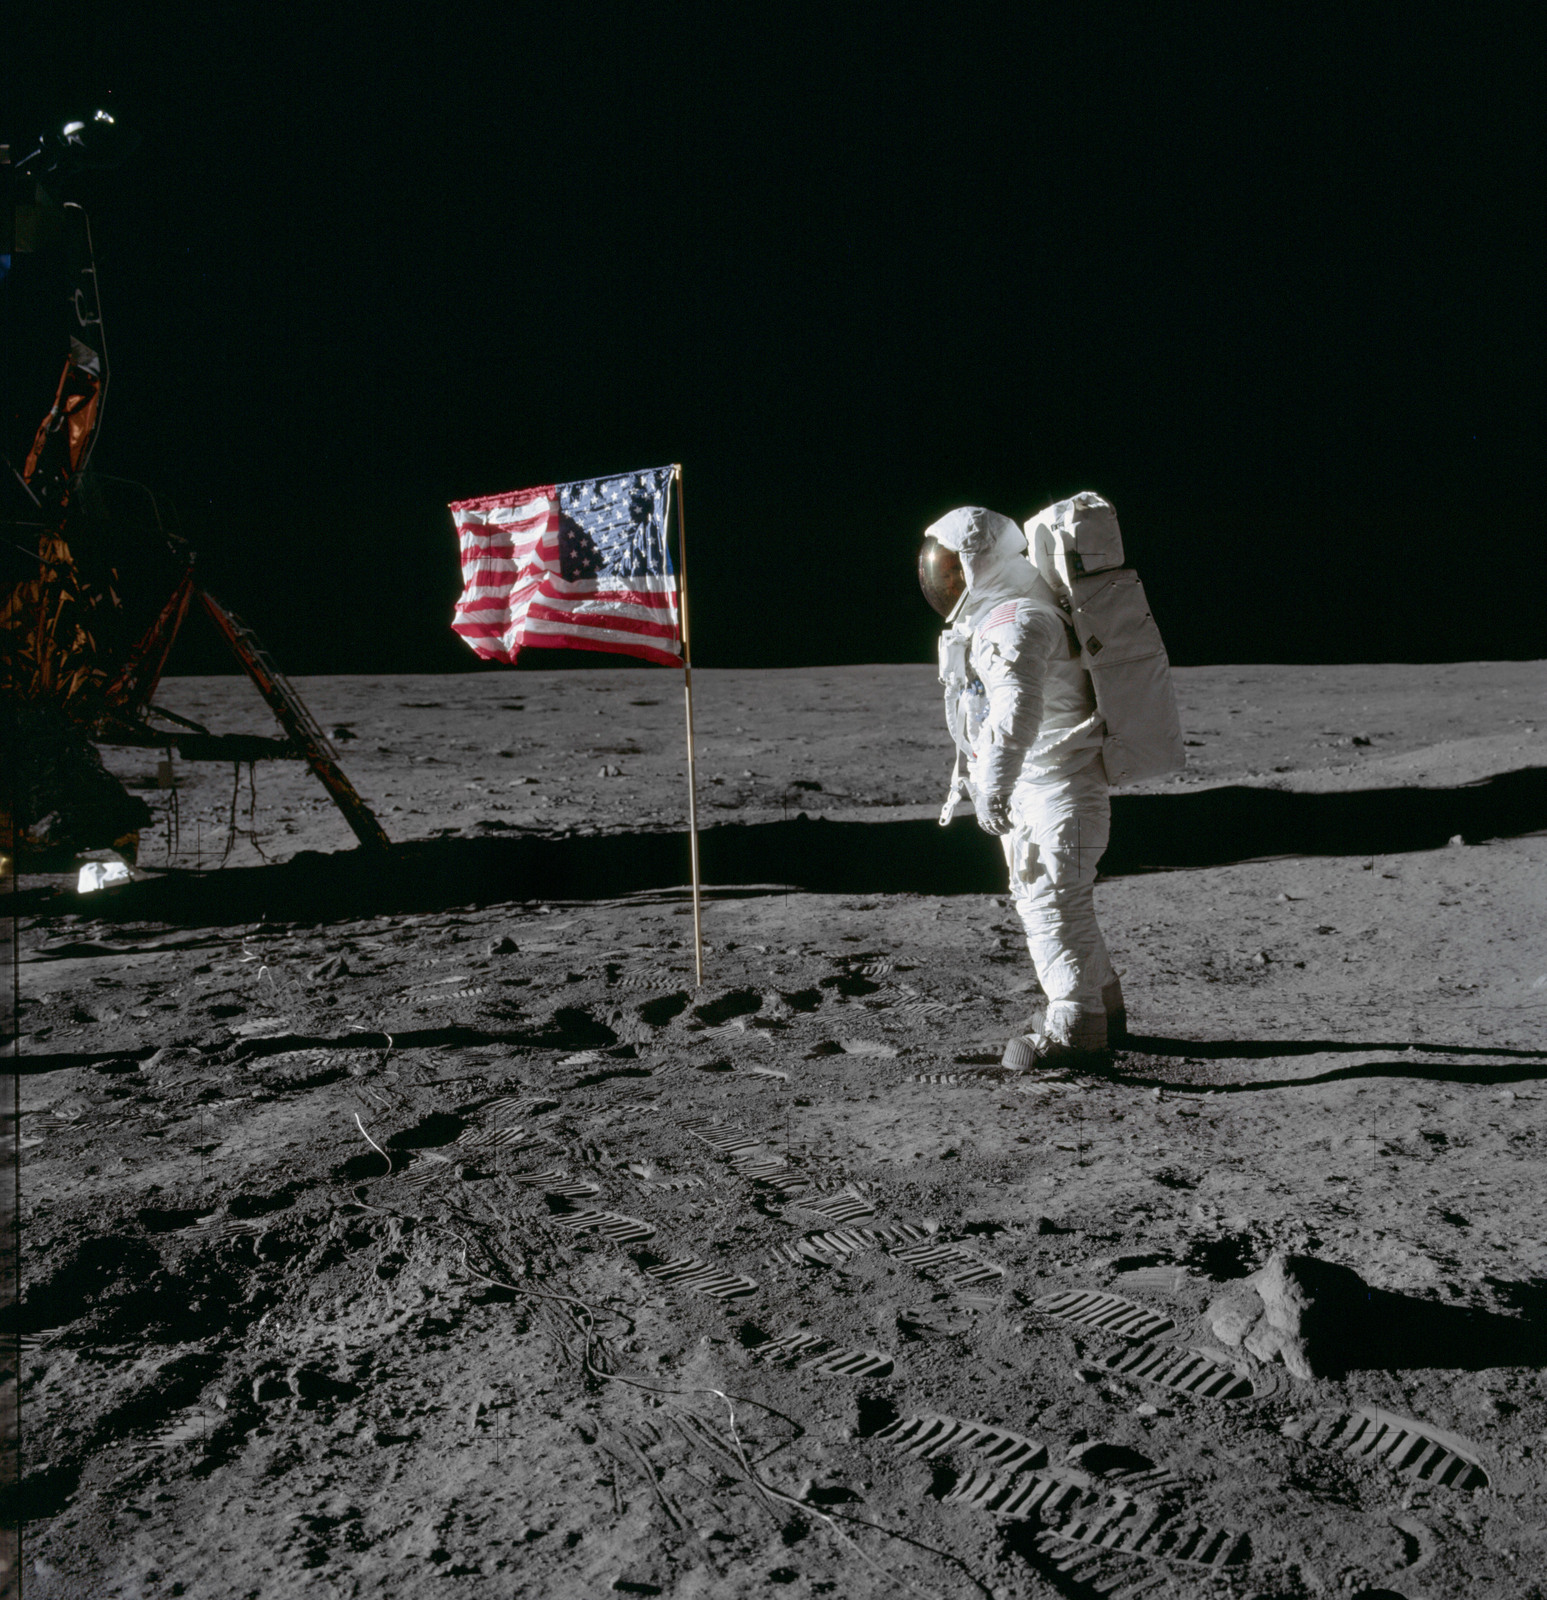 AS11-40-5875 - Apollo 11 - Apollo 11 Mission image - Astronaut Edwin Aldrin salutes the U.S. flag that has been placed on the moon